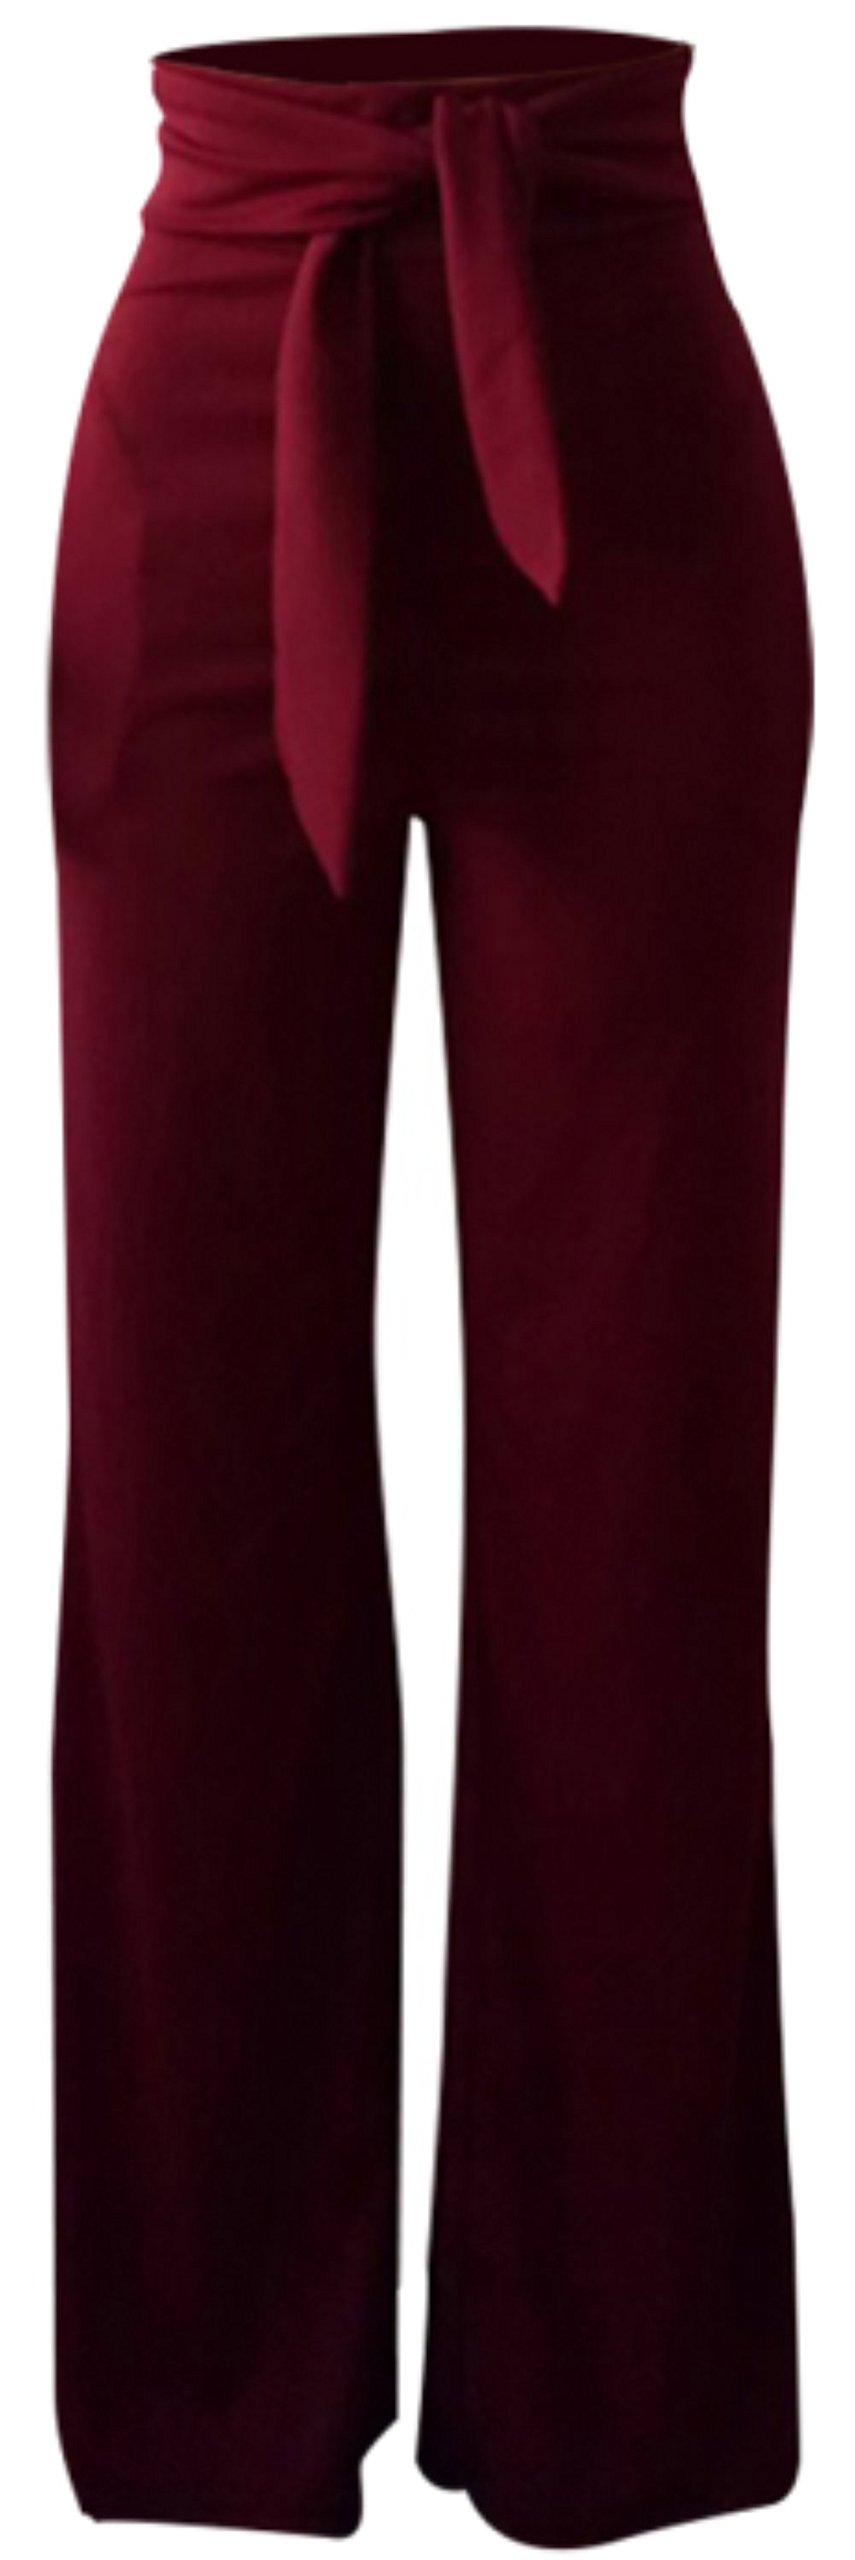 Shinfy Women Legging Pants with Ties Plus Size High Waist Stretch Straight Wide Long Pants Wit Belts